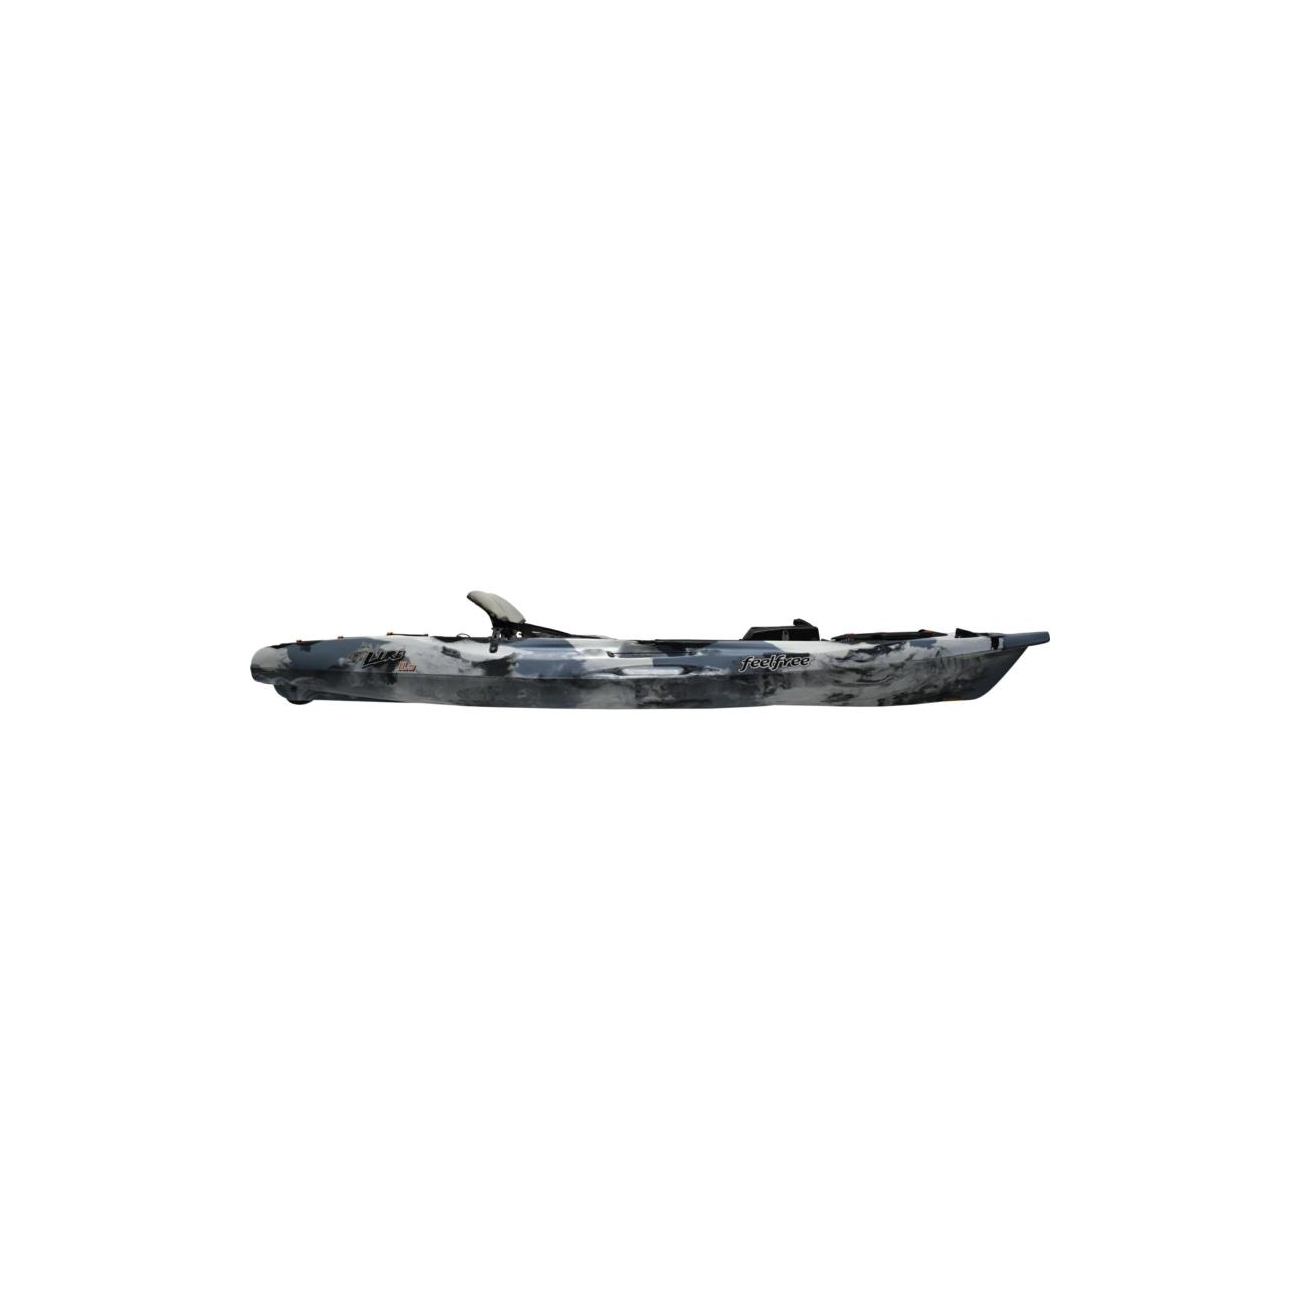 https://feelfreekayak.eu/509-small_default/lure-115-v2-winter-camo.jpg